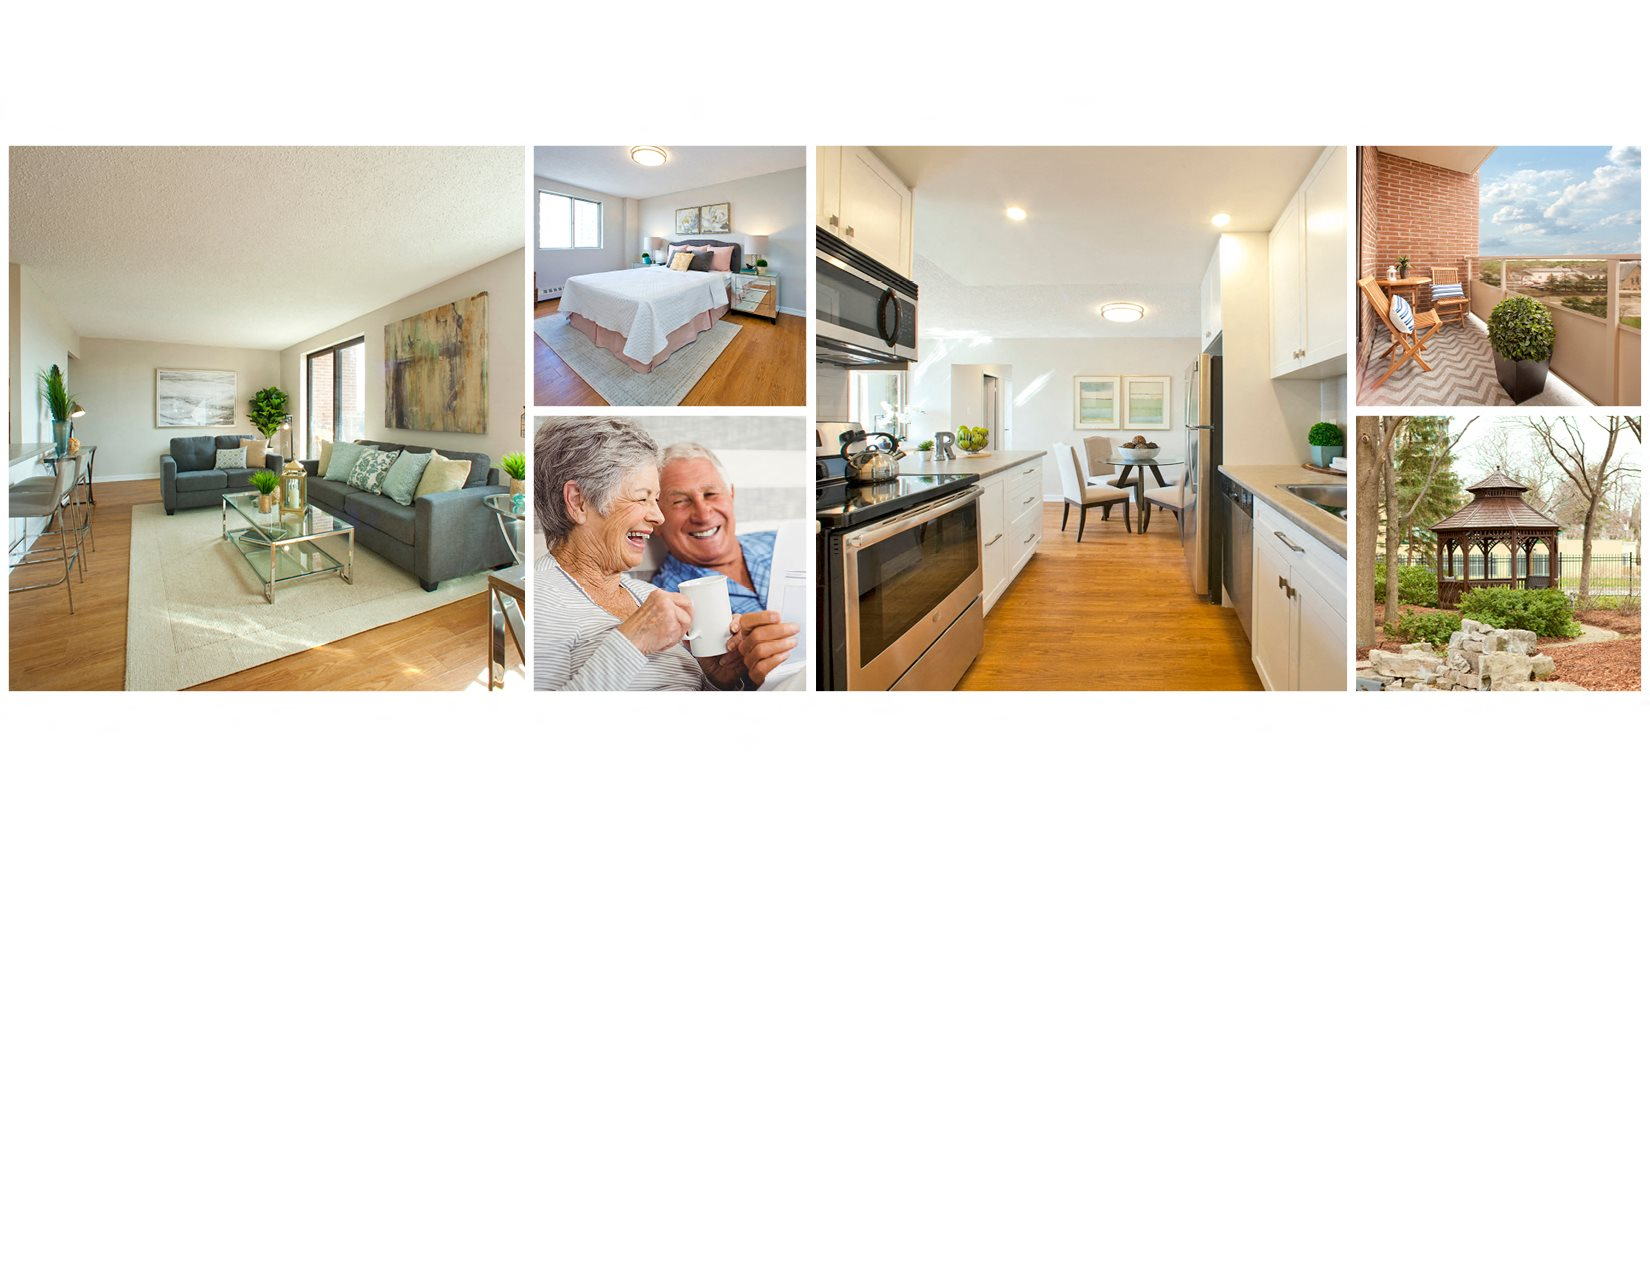 Collage of interior, exterior, and lifestyle images at Millside Tower in Milton, ON